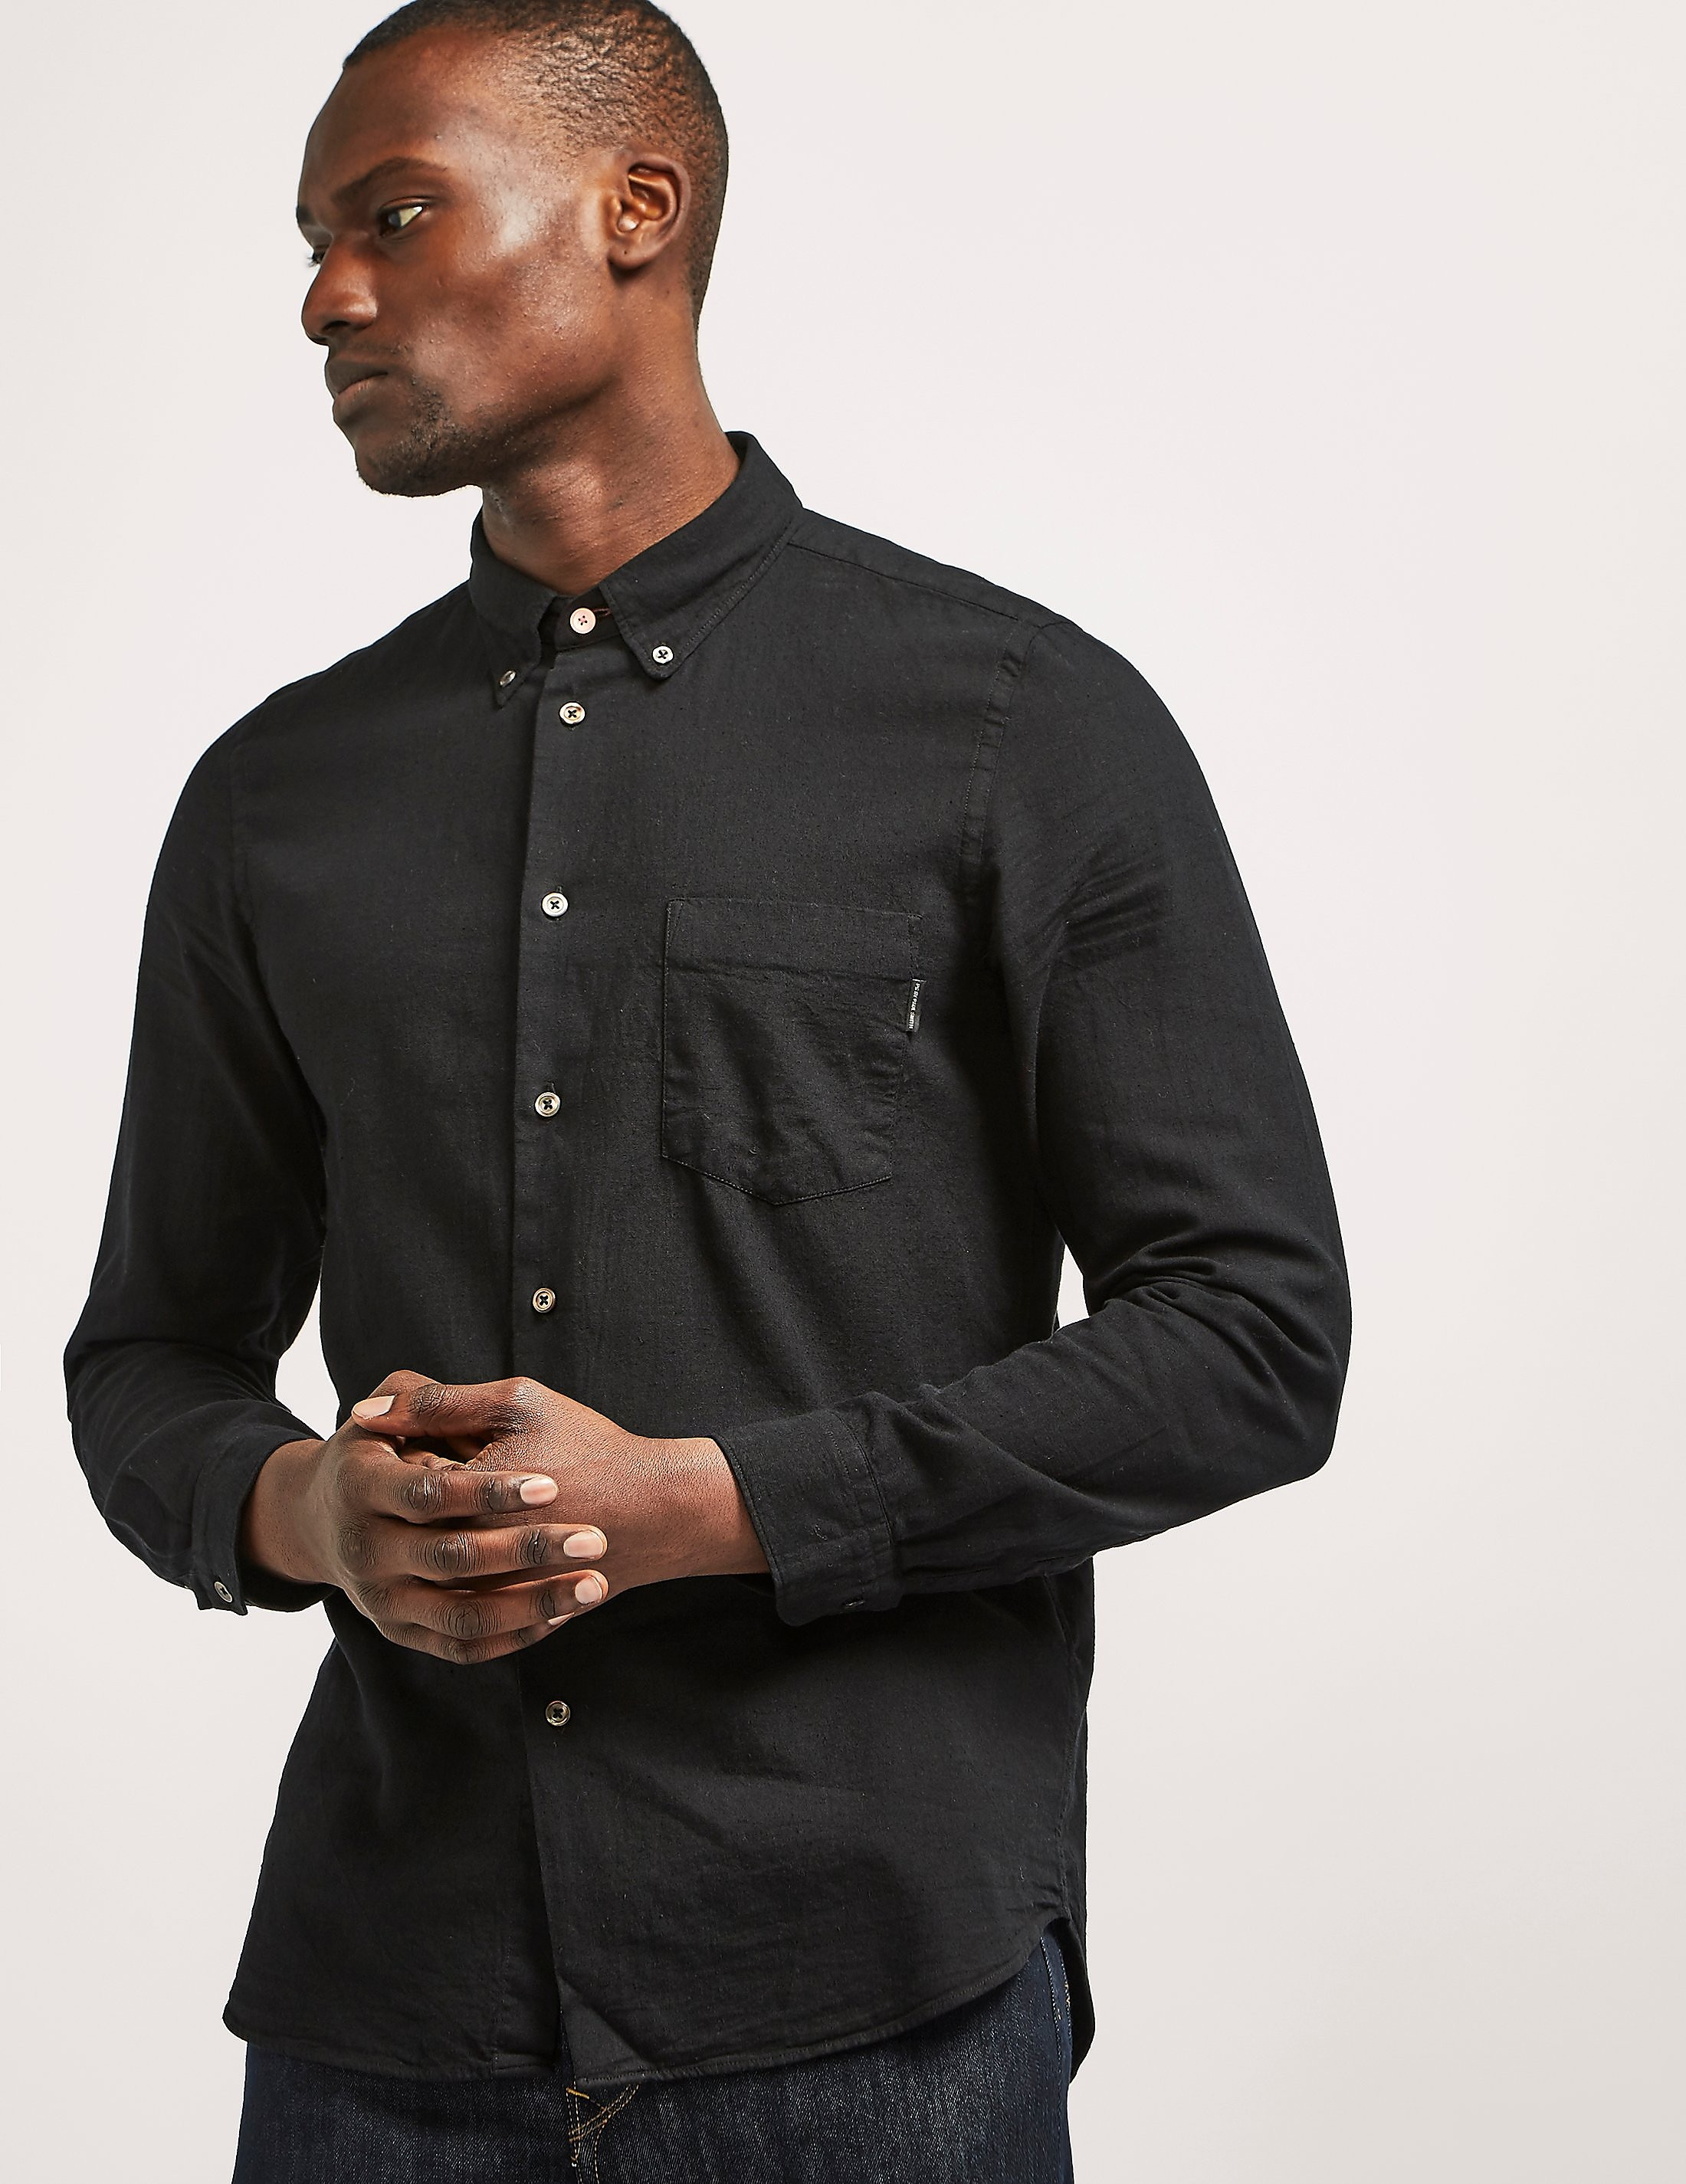 Paul Smith TF Overdyed Shirt